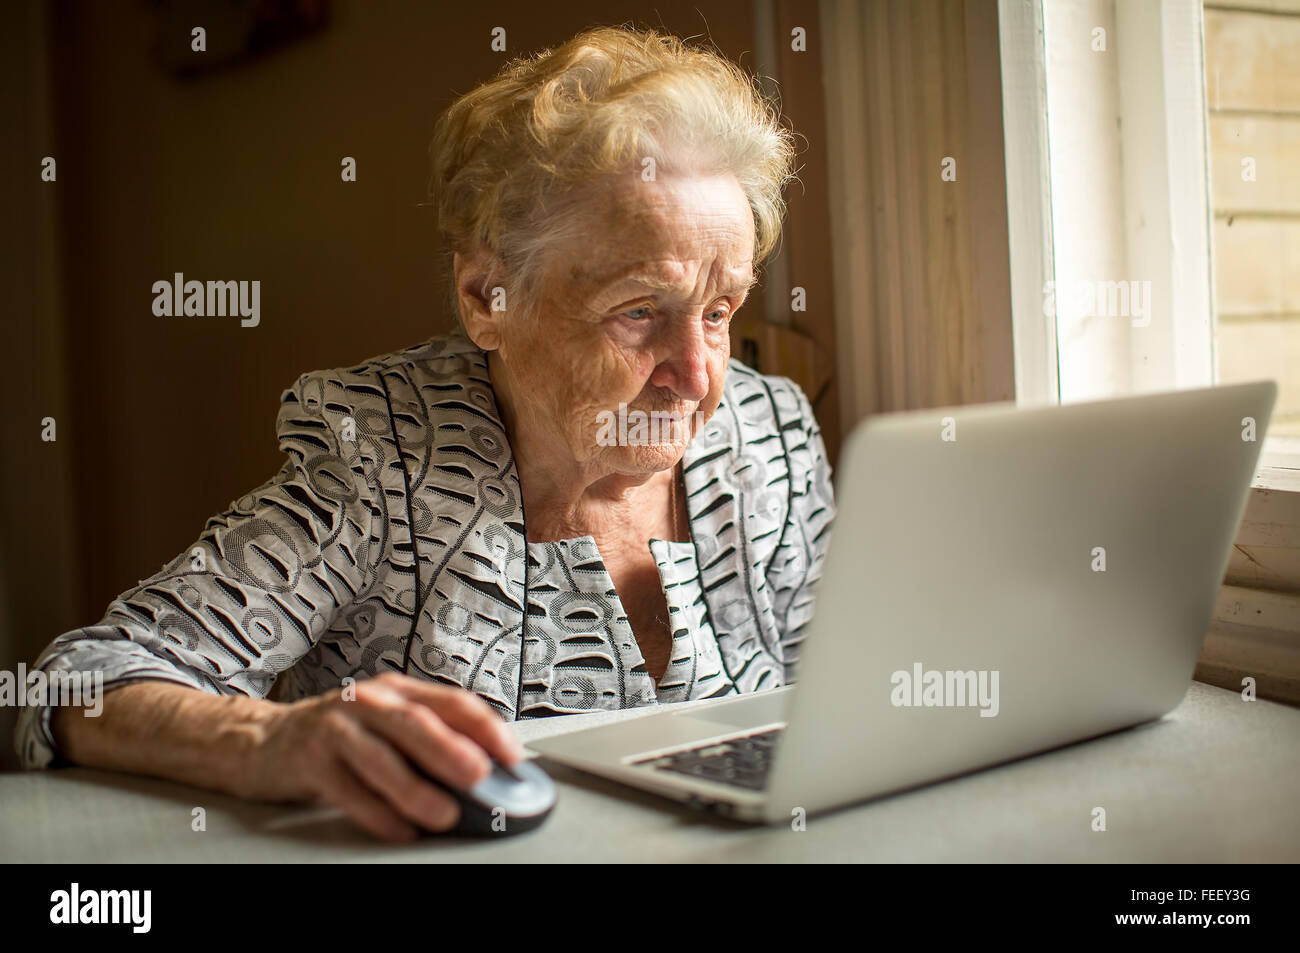 Elderly woman working on laptop at home sitting at the table. - Stock Image